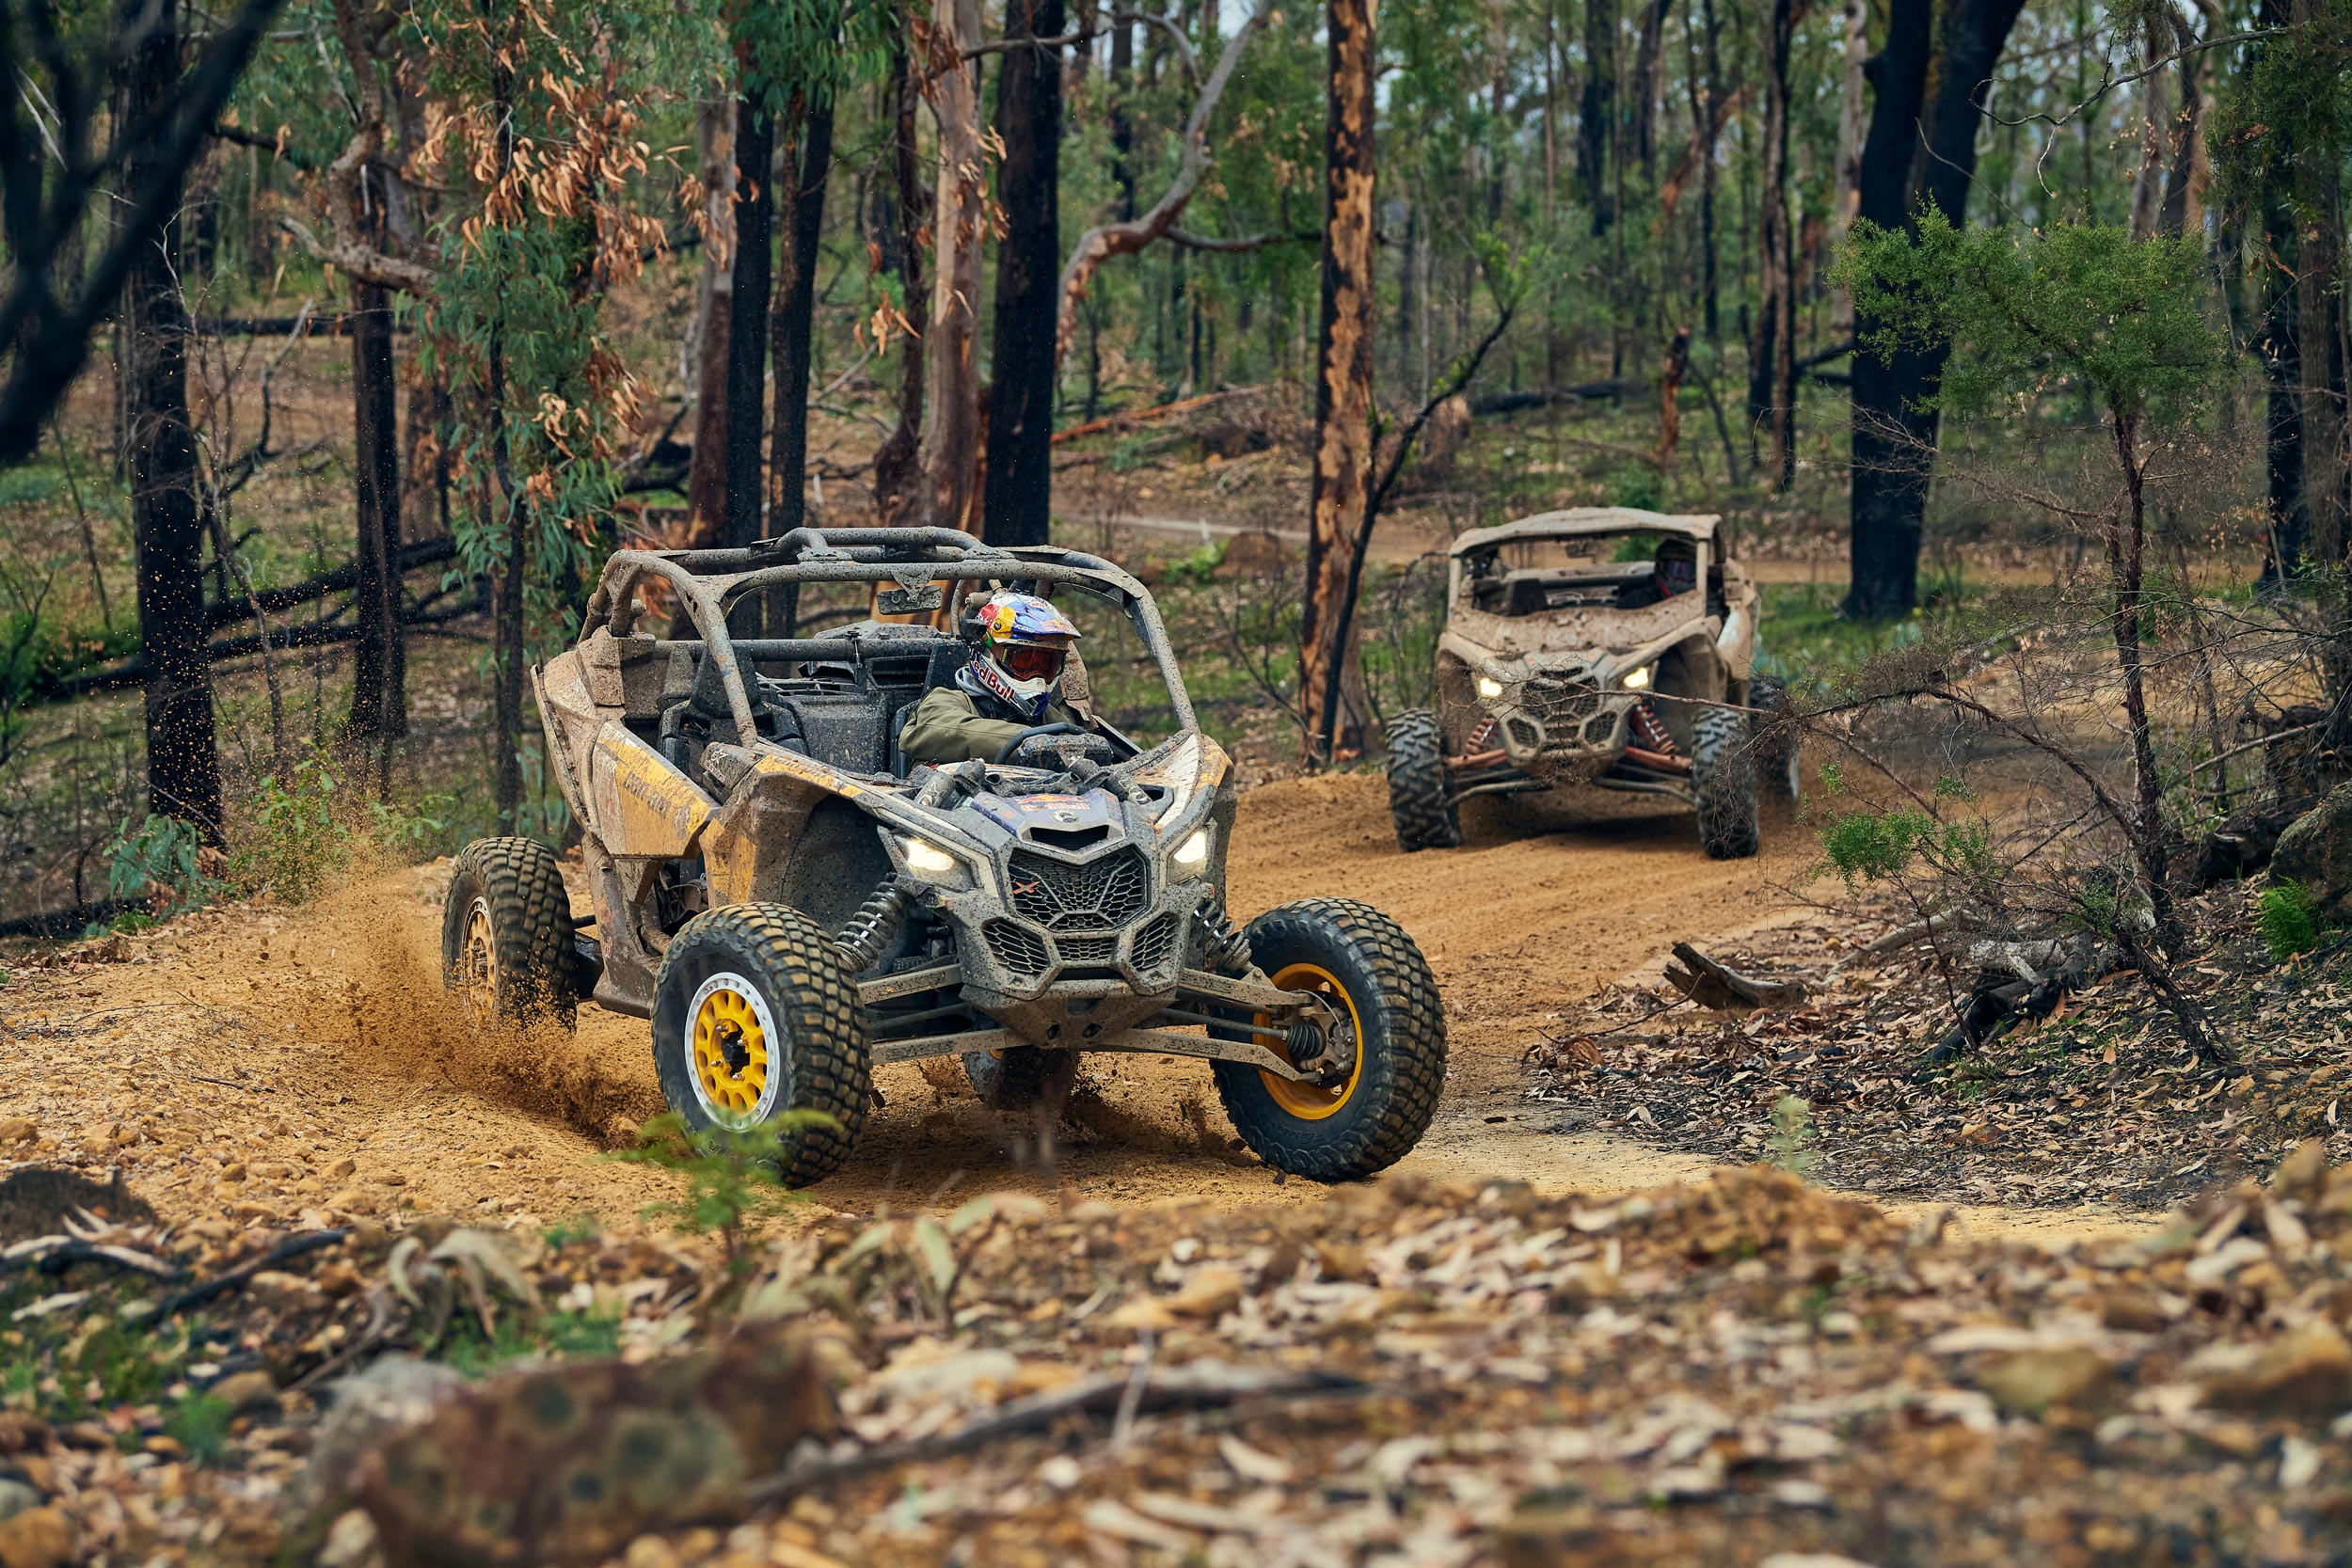 A side-by-side vehicle being driven on a dirt trail